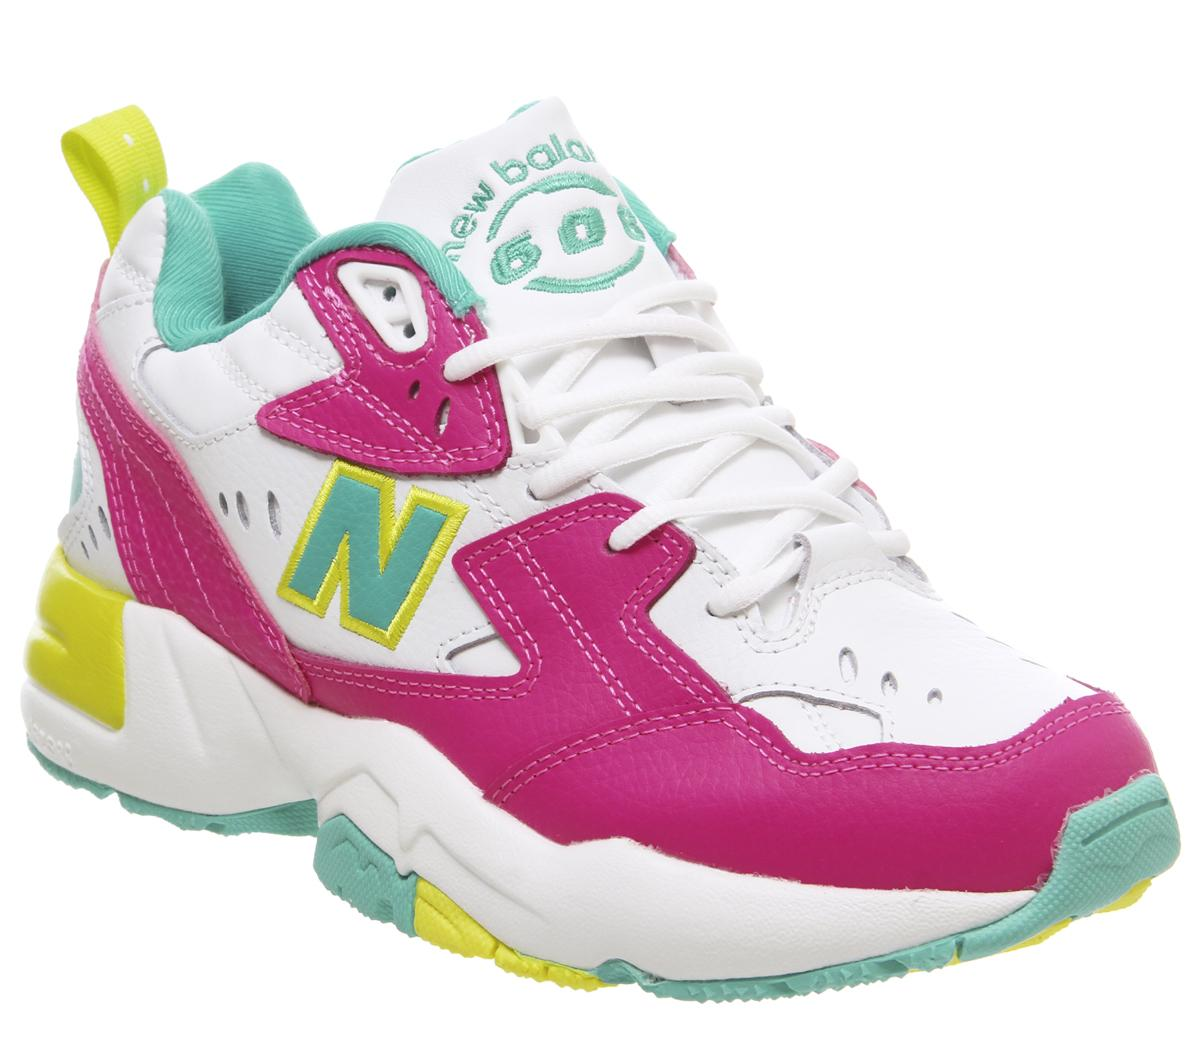 New Balance 608 Trainers White Fuschia Pink Lime Green